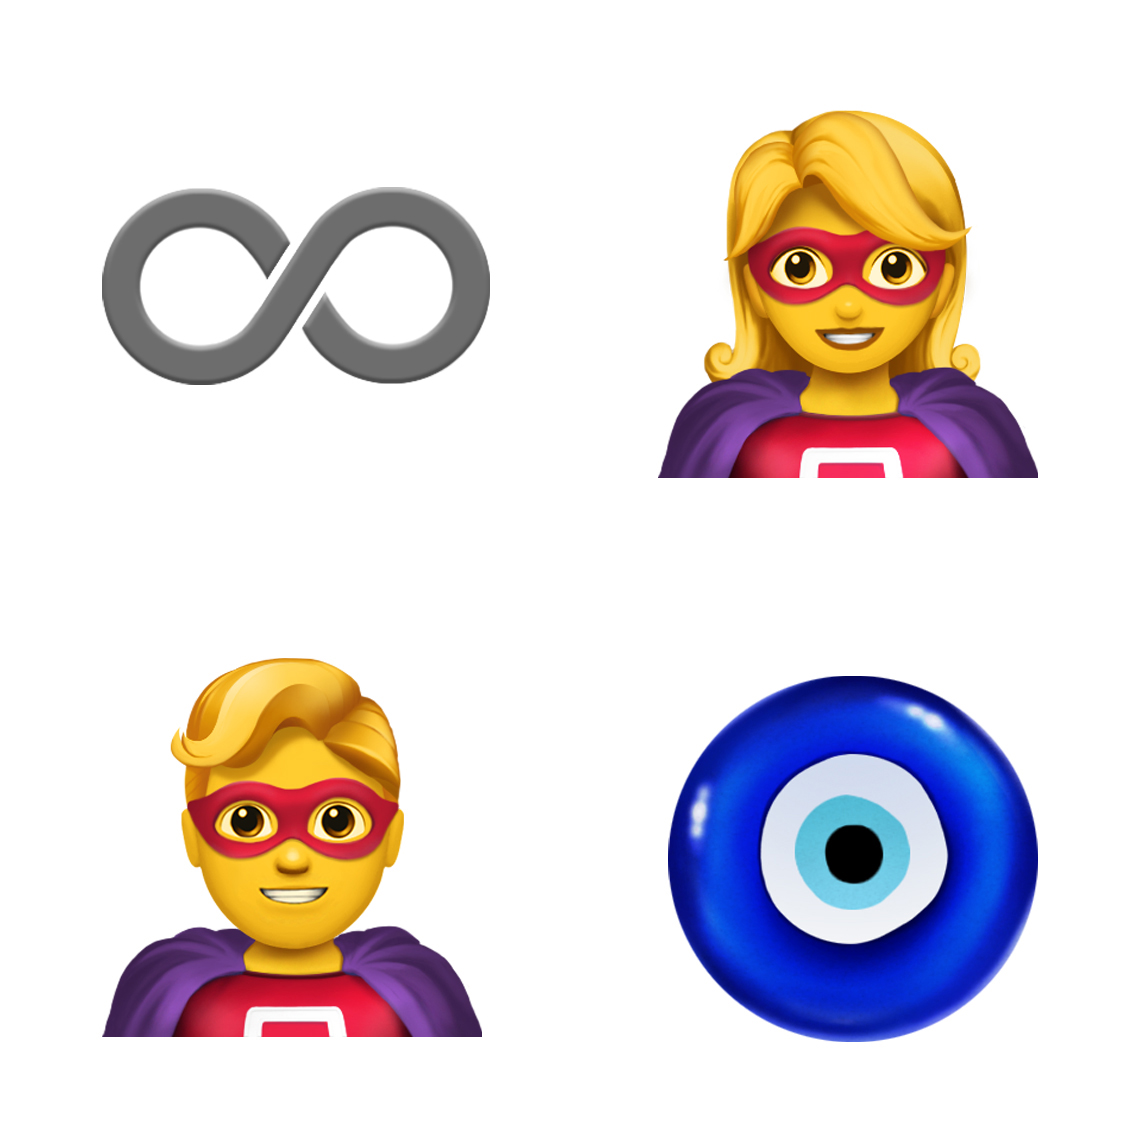 https://www.apple.com/newsroom/images/product/os/ios/standard/Apple_Emoji_update_2018_2_07162018_carousel.jpg.large.jpg